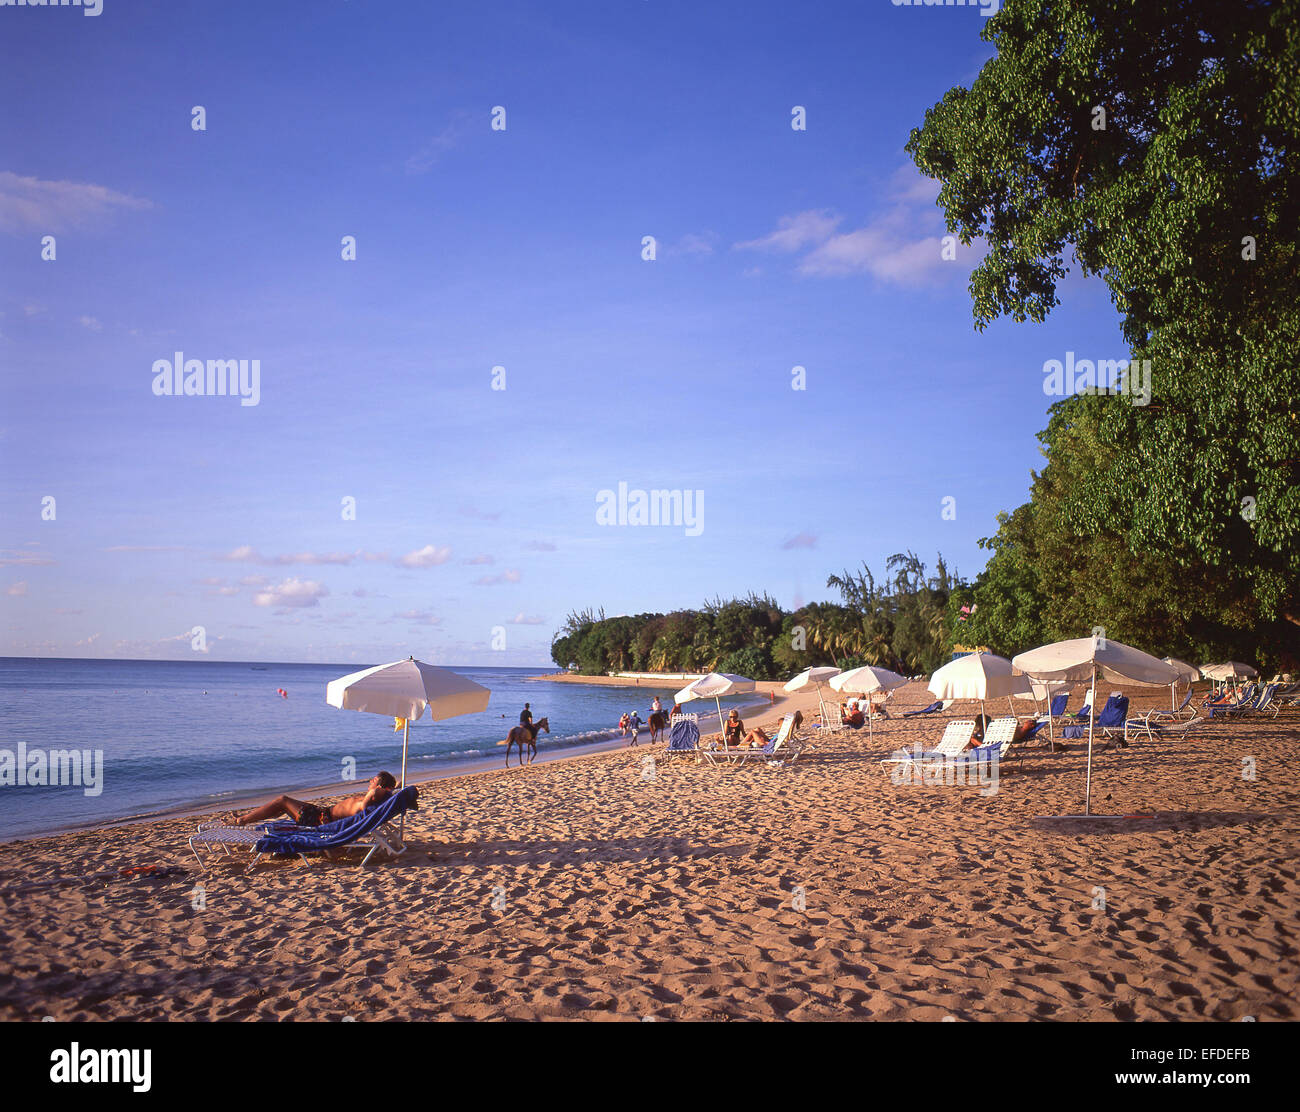 Sandy Lane Beach at sunset, Saint James Parish, Barbados, Lesser Antilles, Caribbean - Stock Image